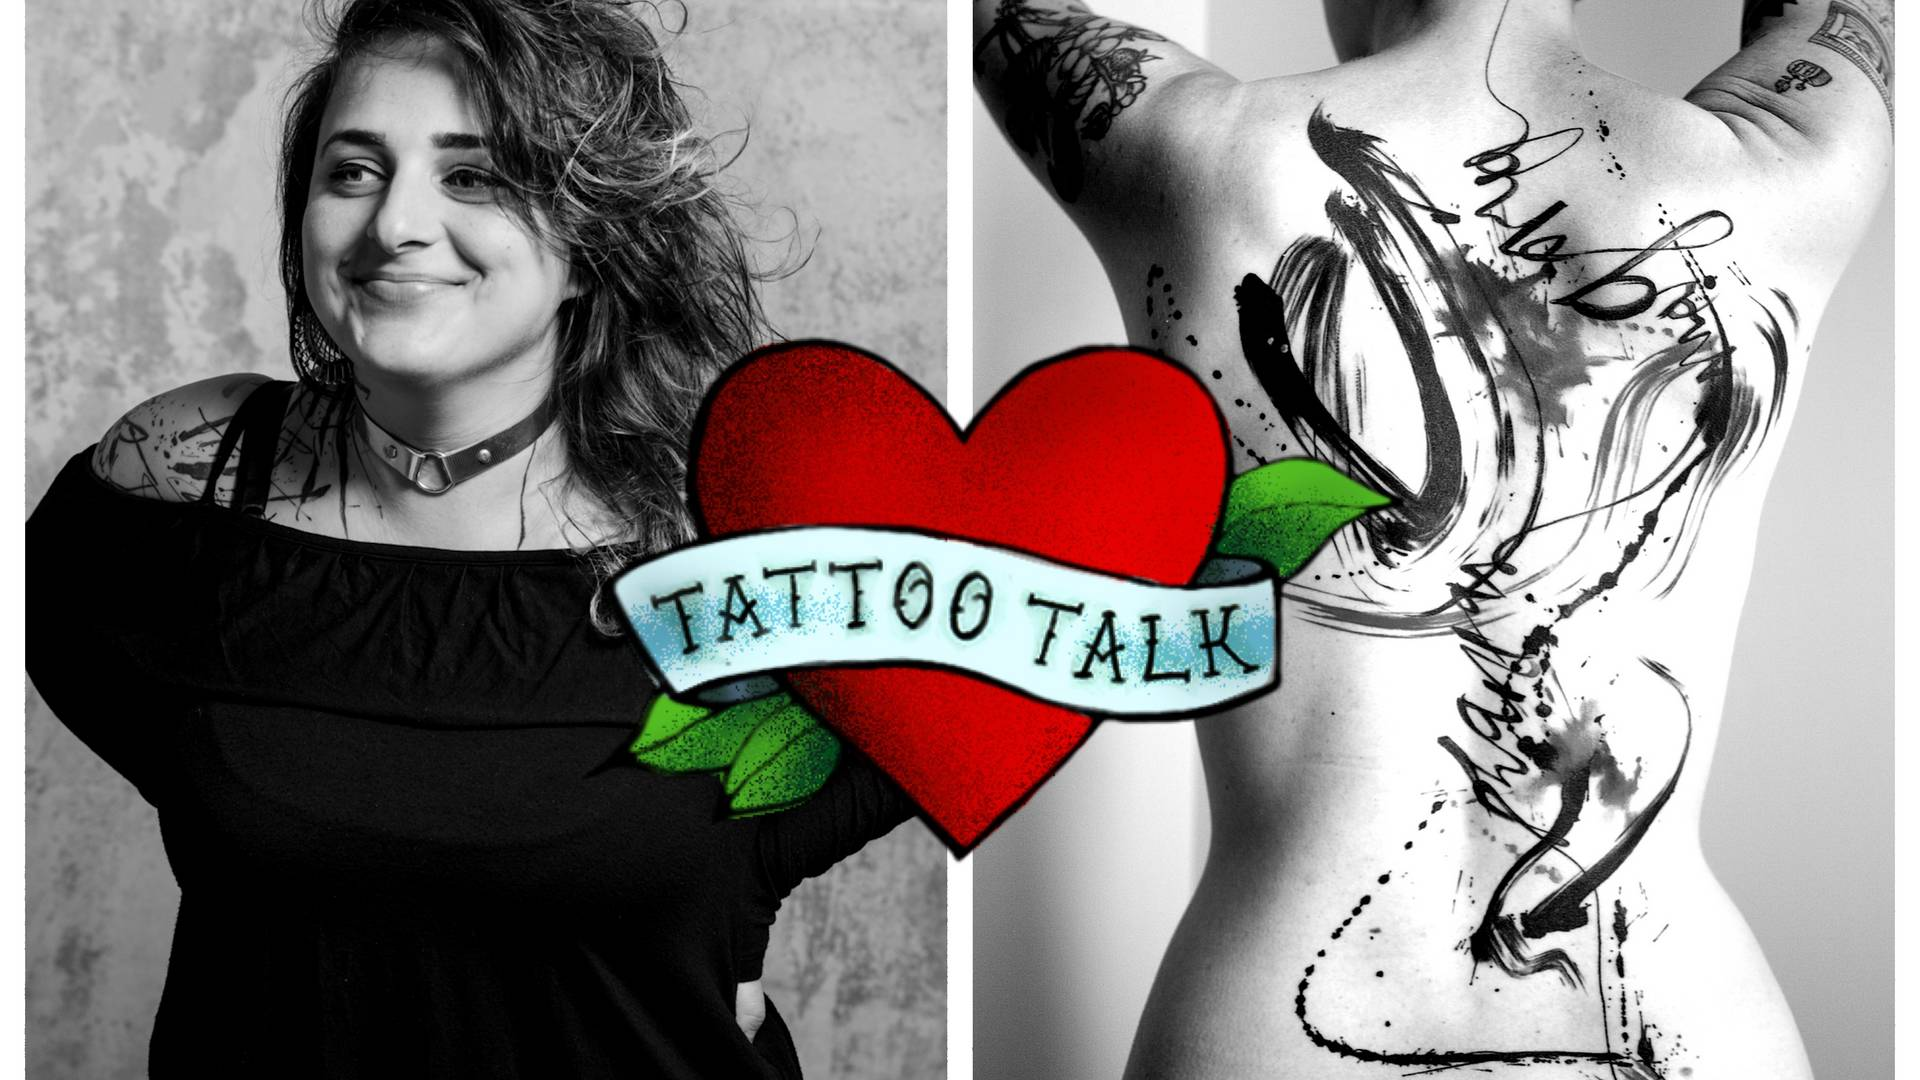 Tattoo Talk #16 mit Lina Tattoo